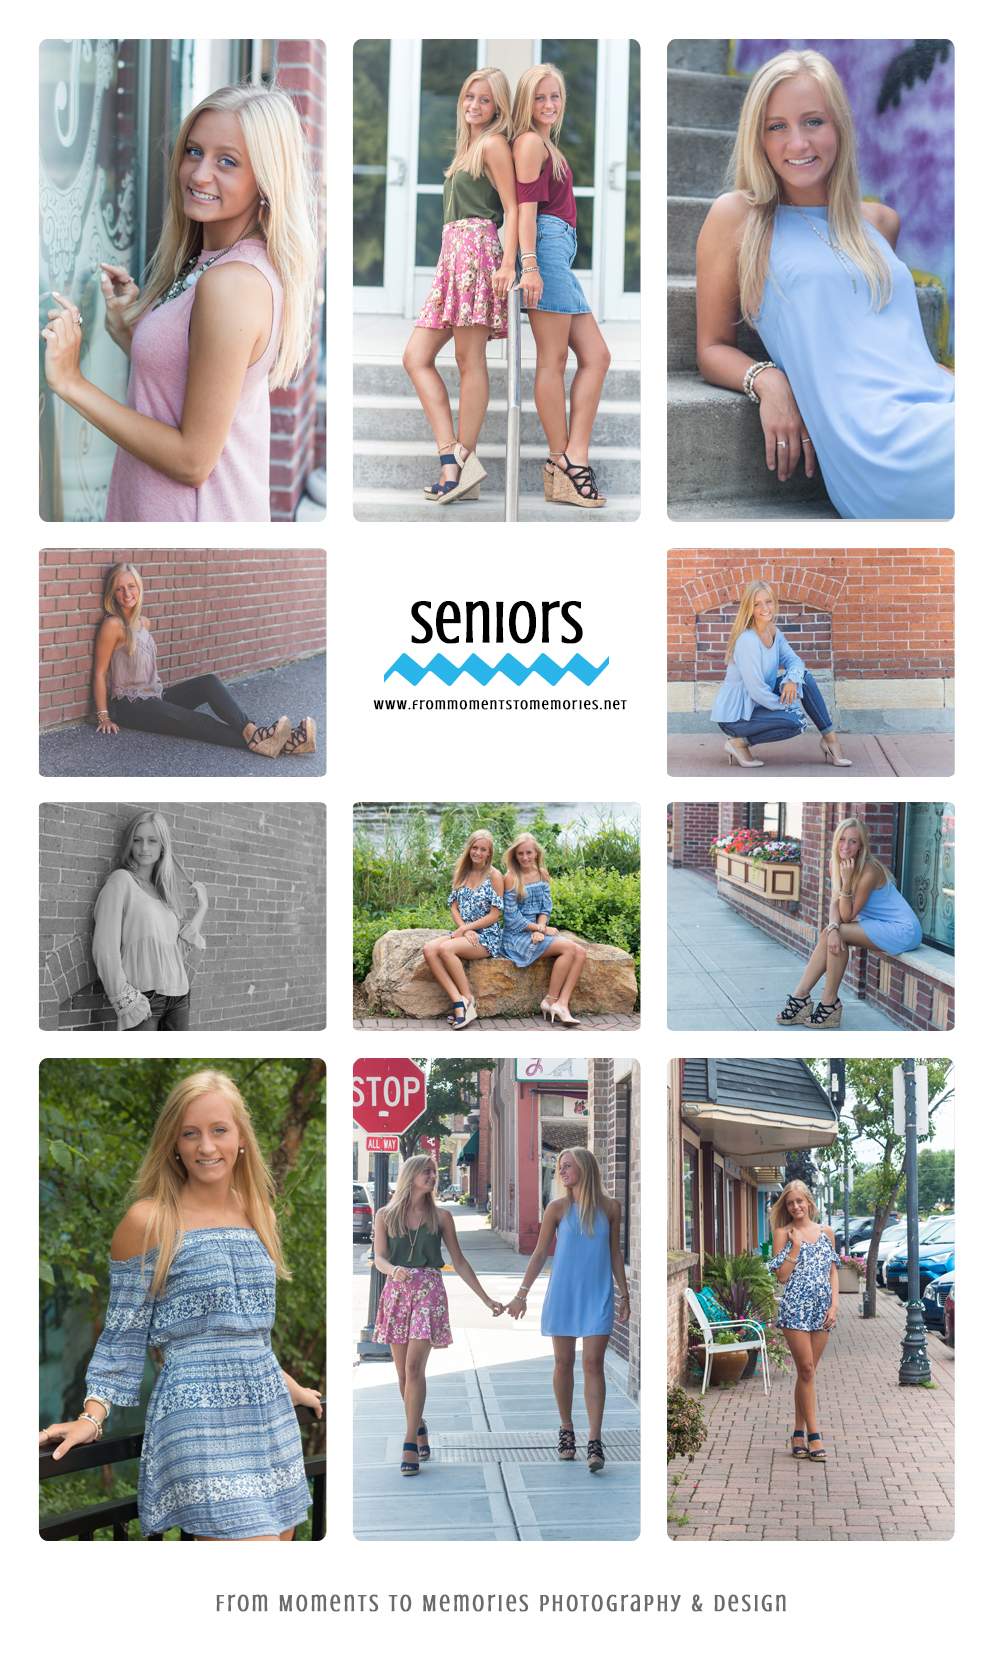 elk_river_senior_pictures_photography_minneapolis_photographer